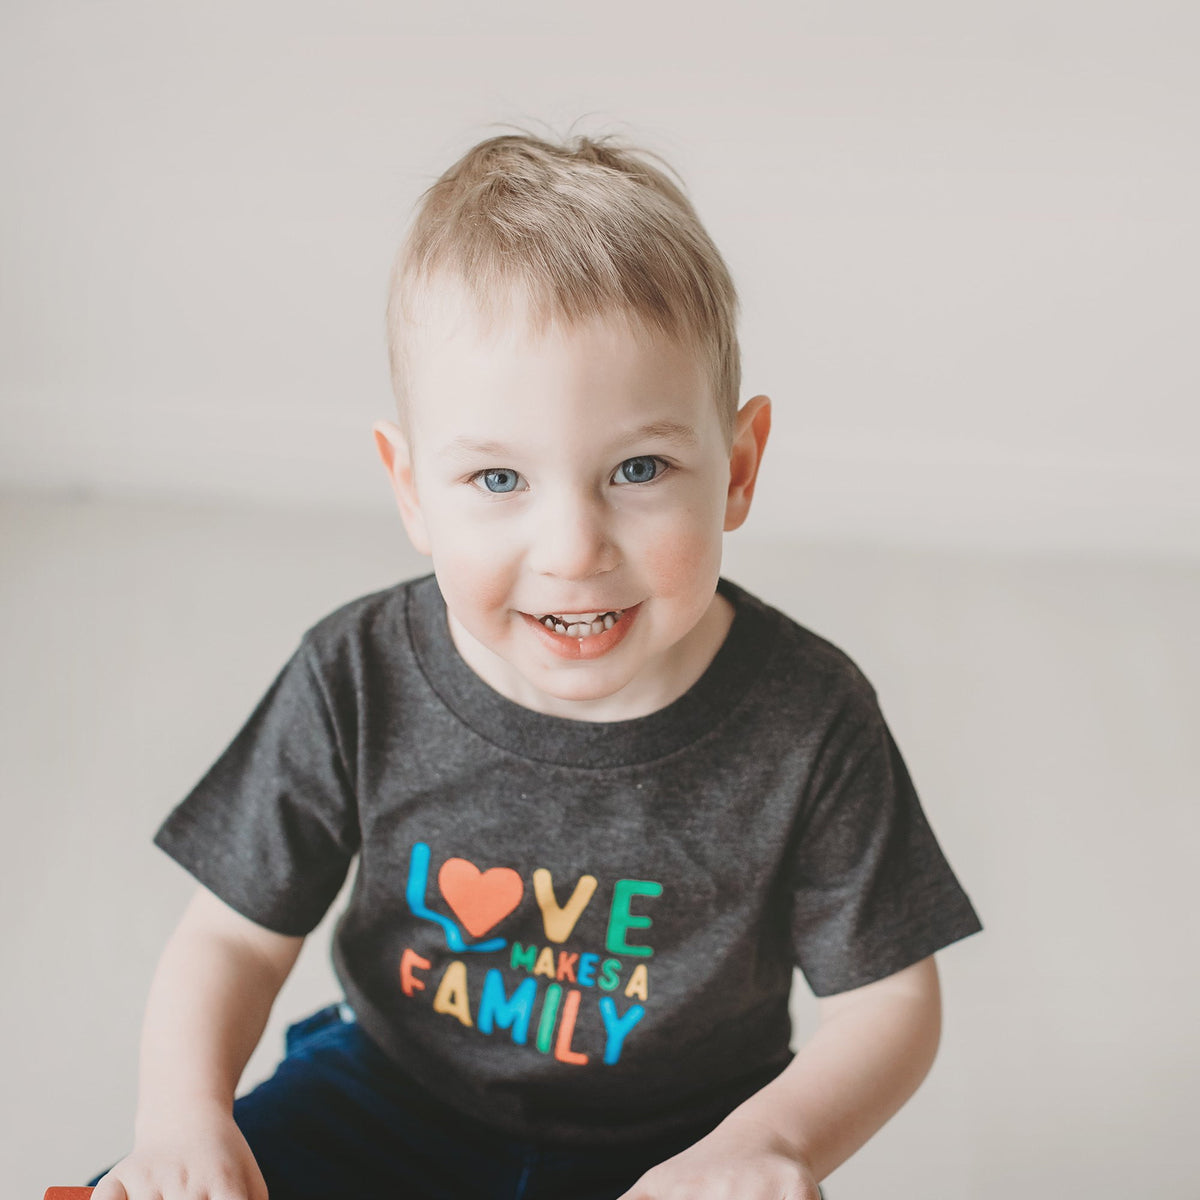 Love Makes a Family Kid's T-shirt - wholesale - Sweetpea and Co.